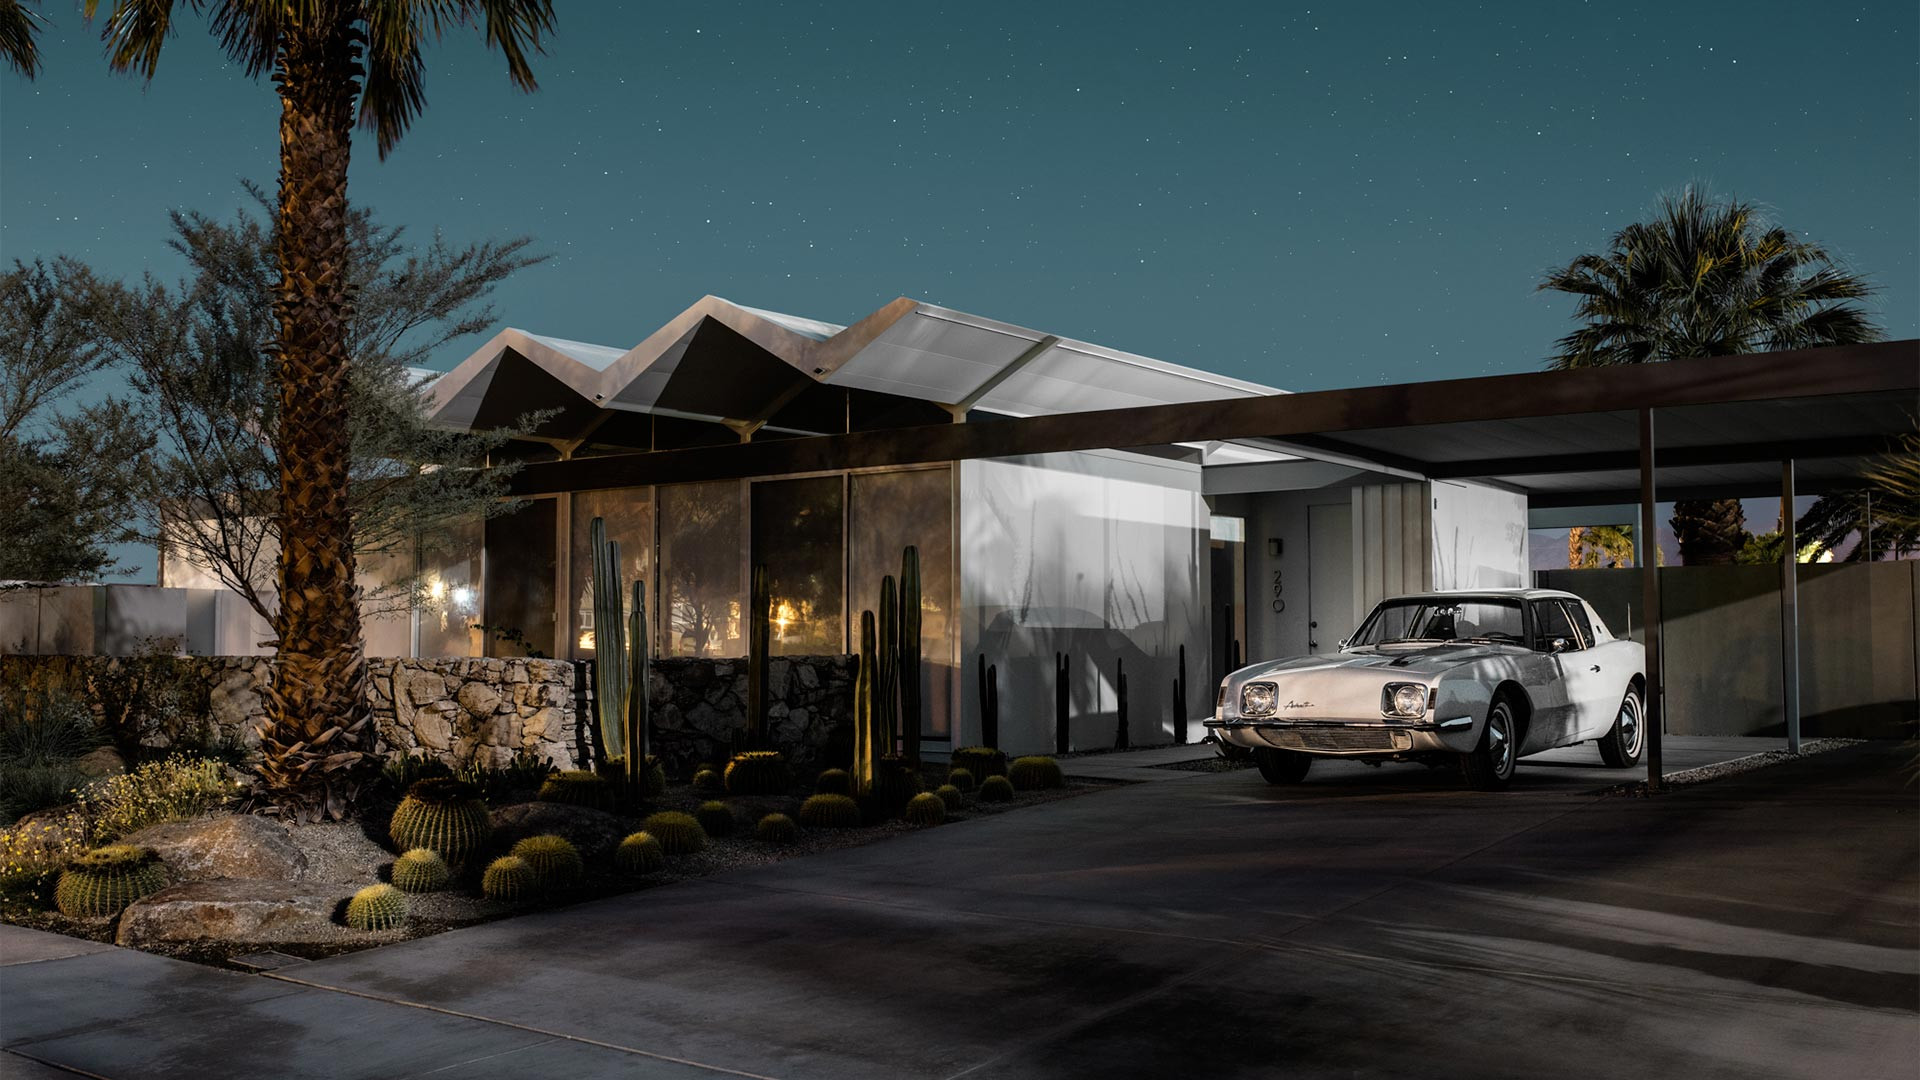 Sutdebaker Avanti outside 290 E Simms Rd, Palm Springs